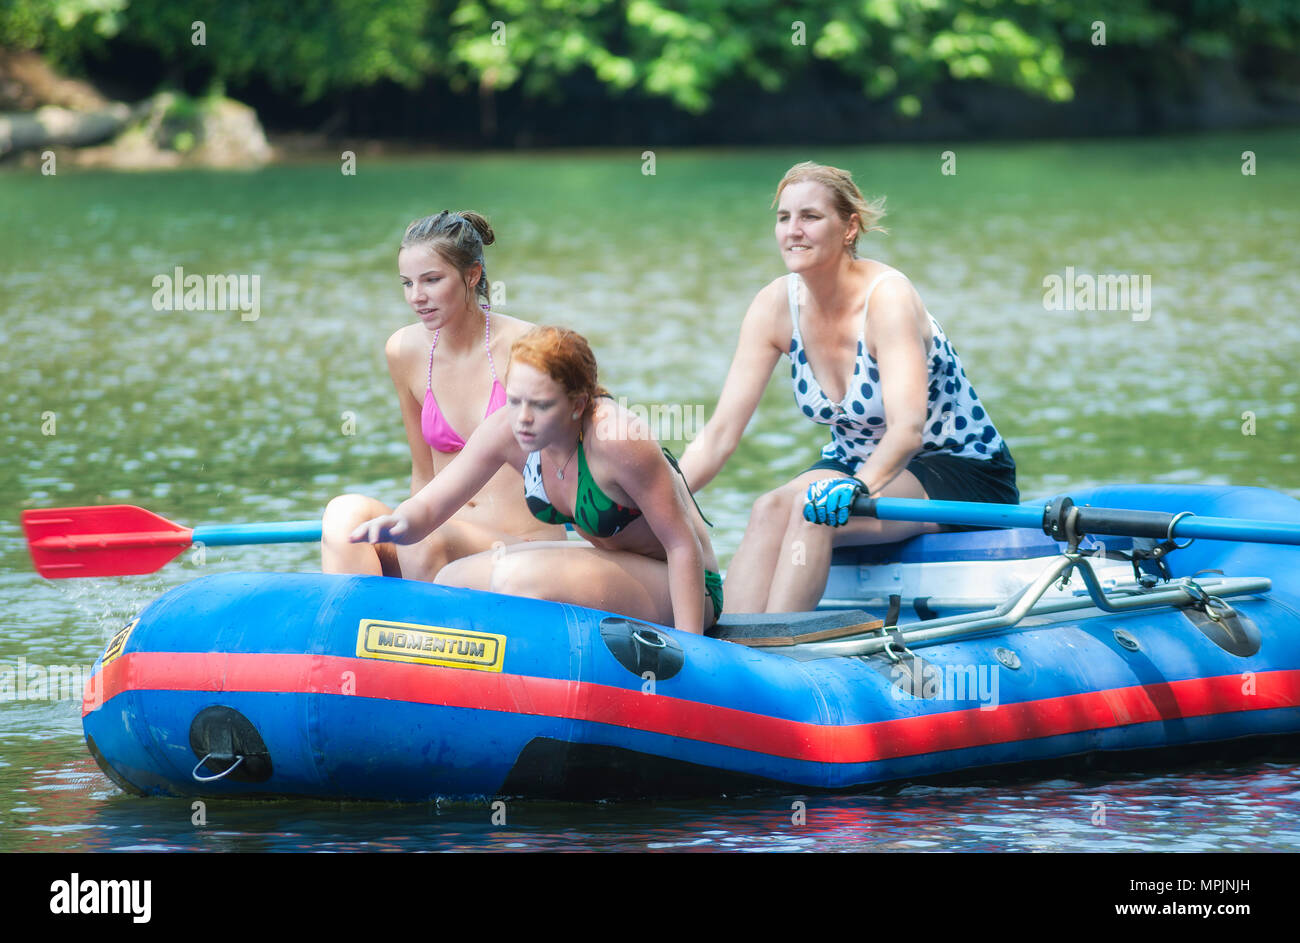 Carver, Oregon,USA - July 30, 2009:Three women in a raft floating down the Clackamas River near Carver, Oregon.  A popular summer water sport. - Stock Image